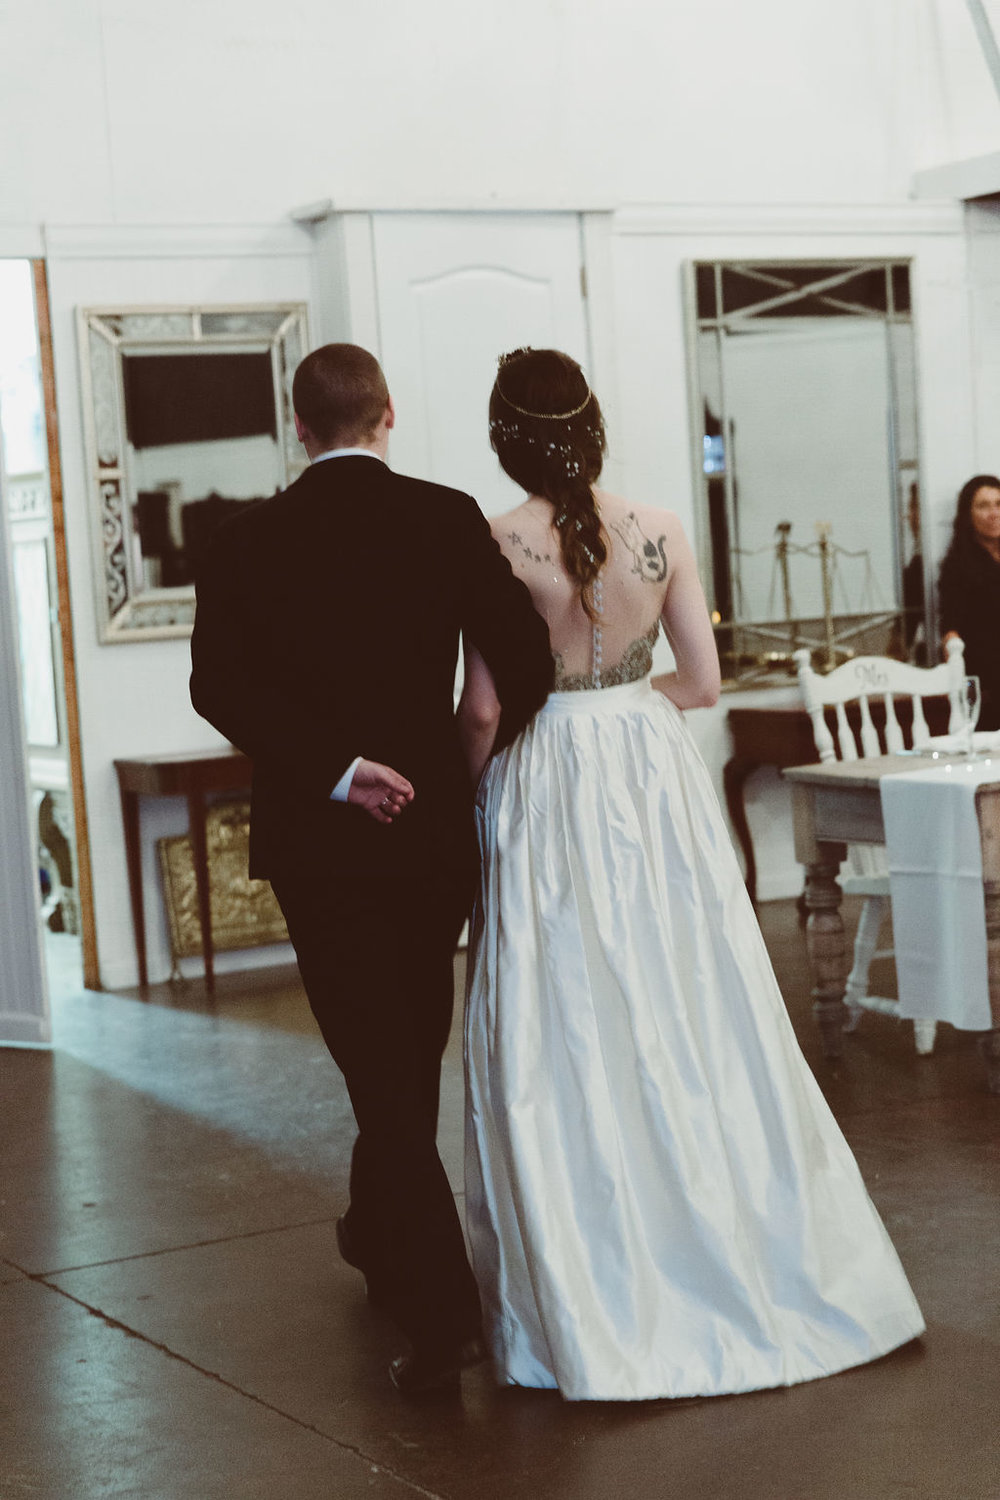 IMGL6610Desiree-Eric-wedding-vaniaelisephotography.jpg